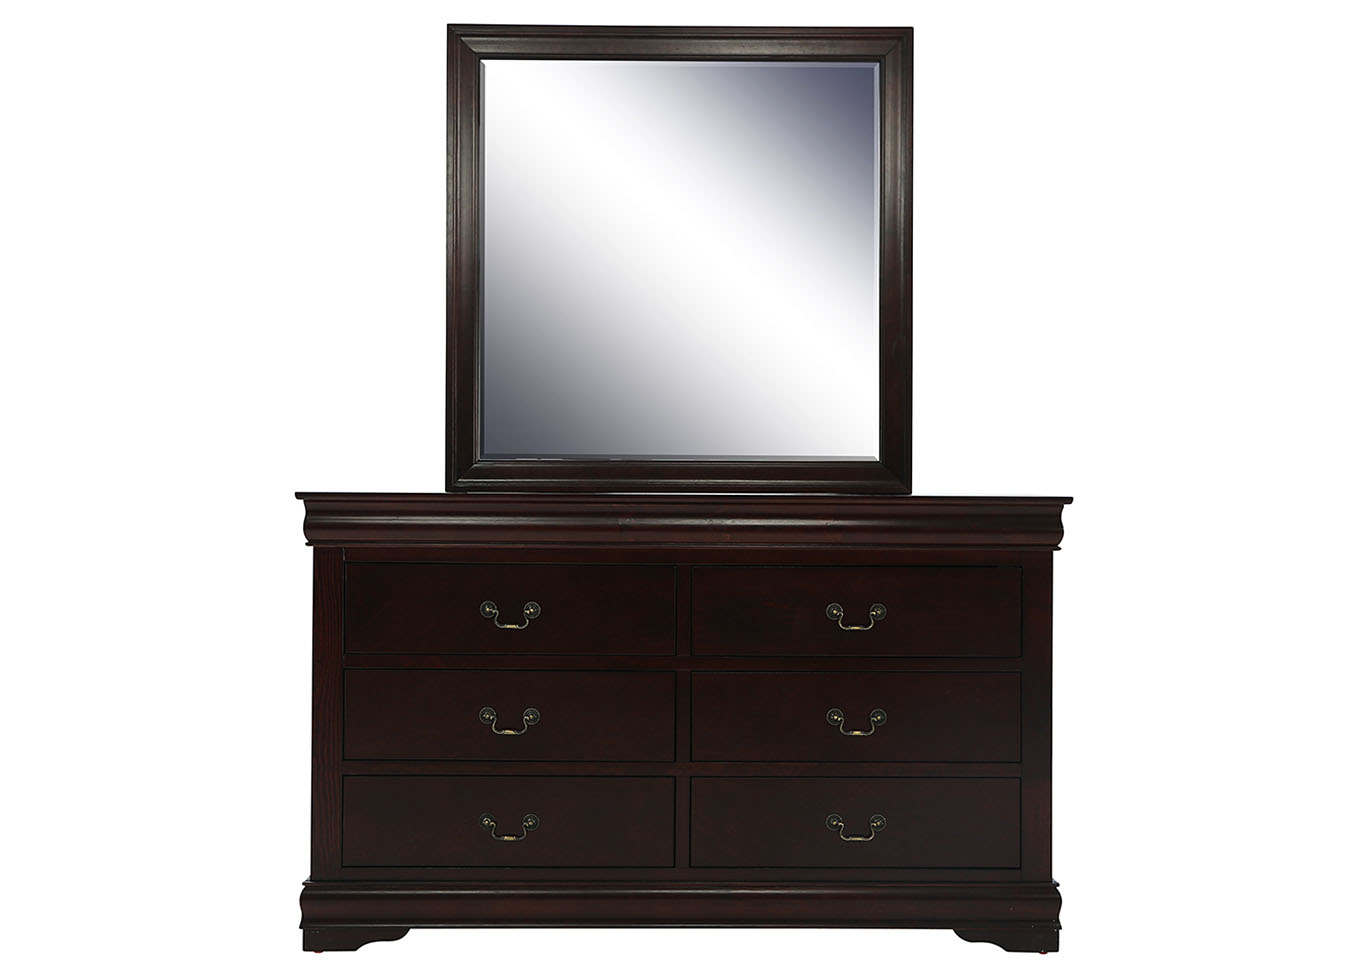 LOUIS PHILIP CHERRY DRESSER AND MIRROR,CROWN MARK INT.